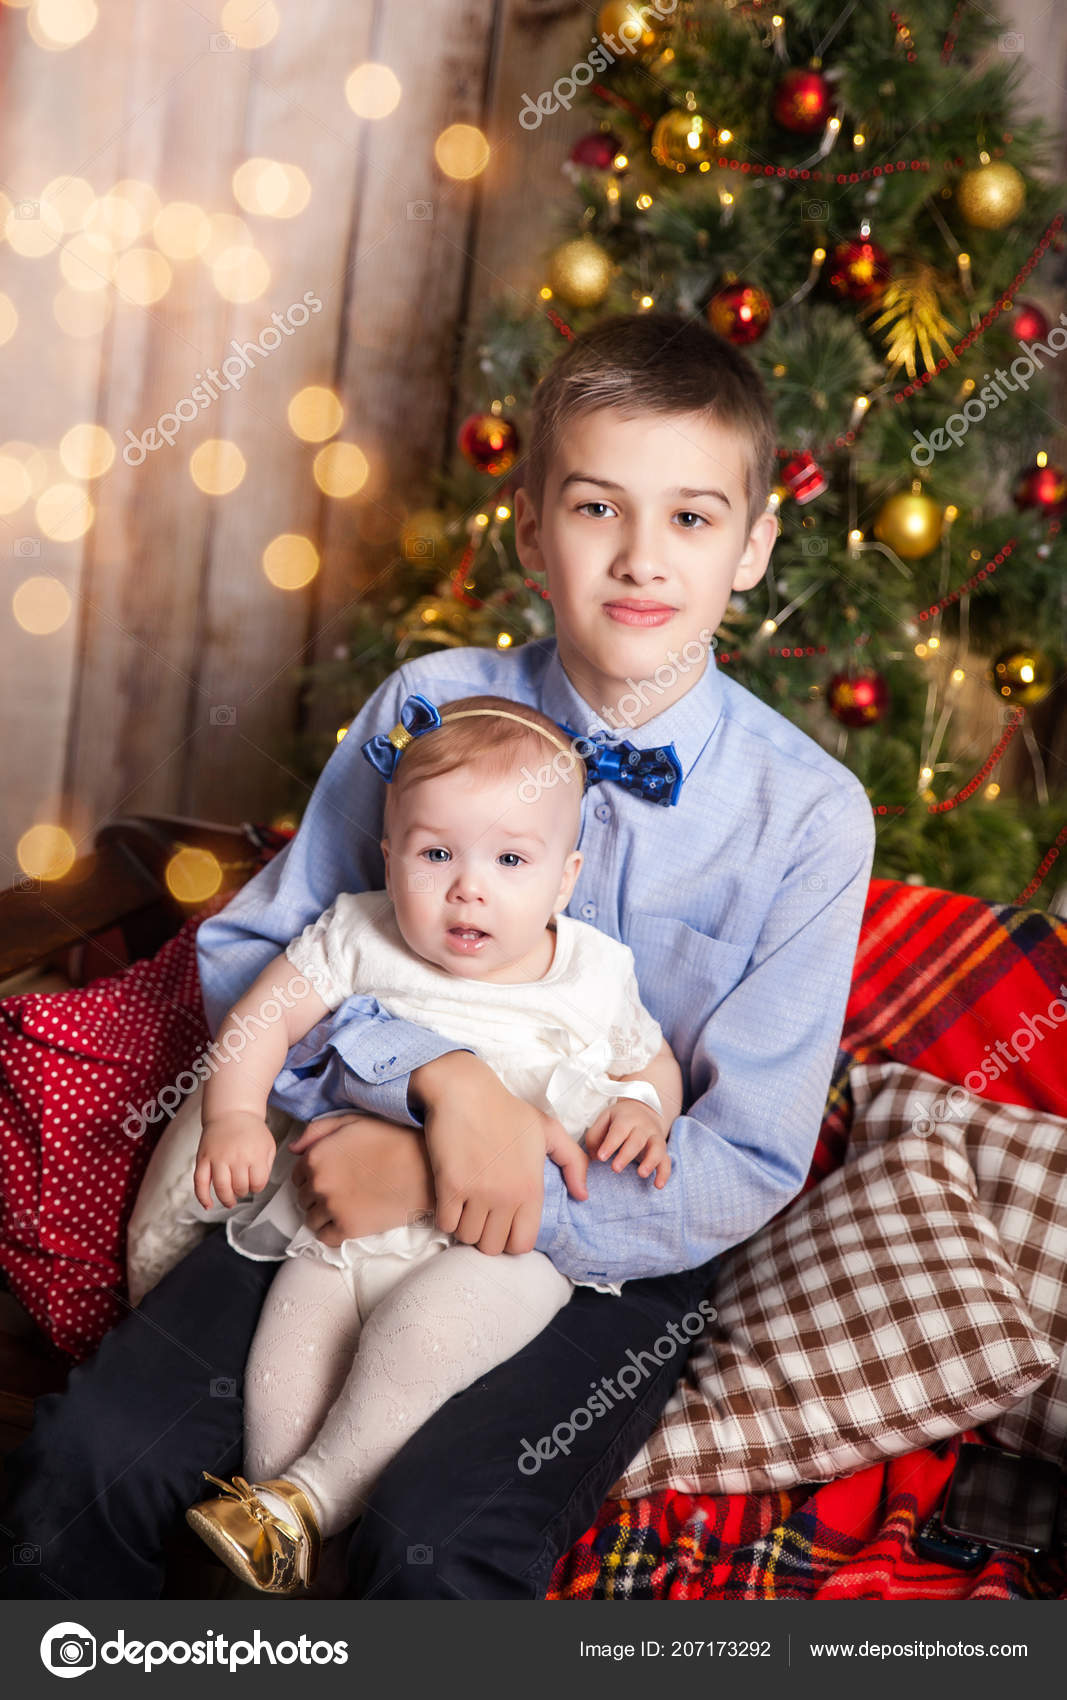 Pictures Big Brother Big Brother With Little Sister In A Christmas Studio Stock Photo C Gorchichko 207173292